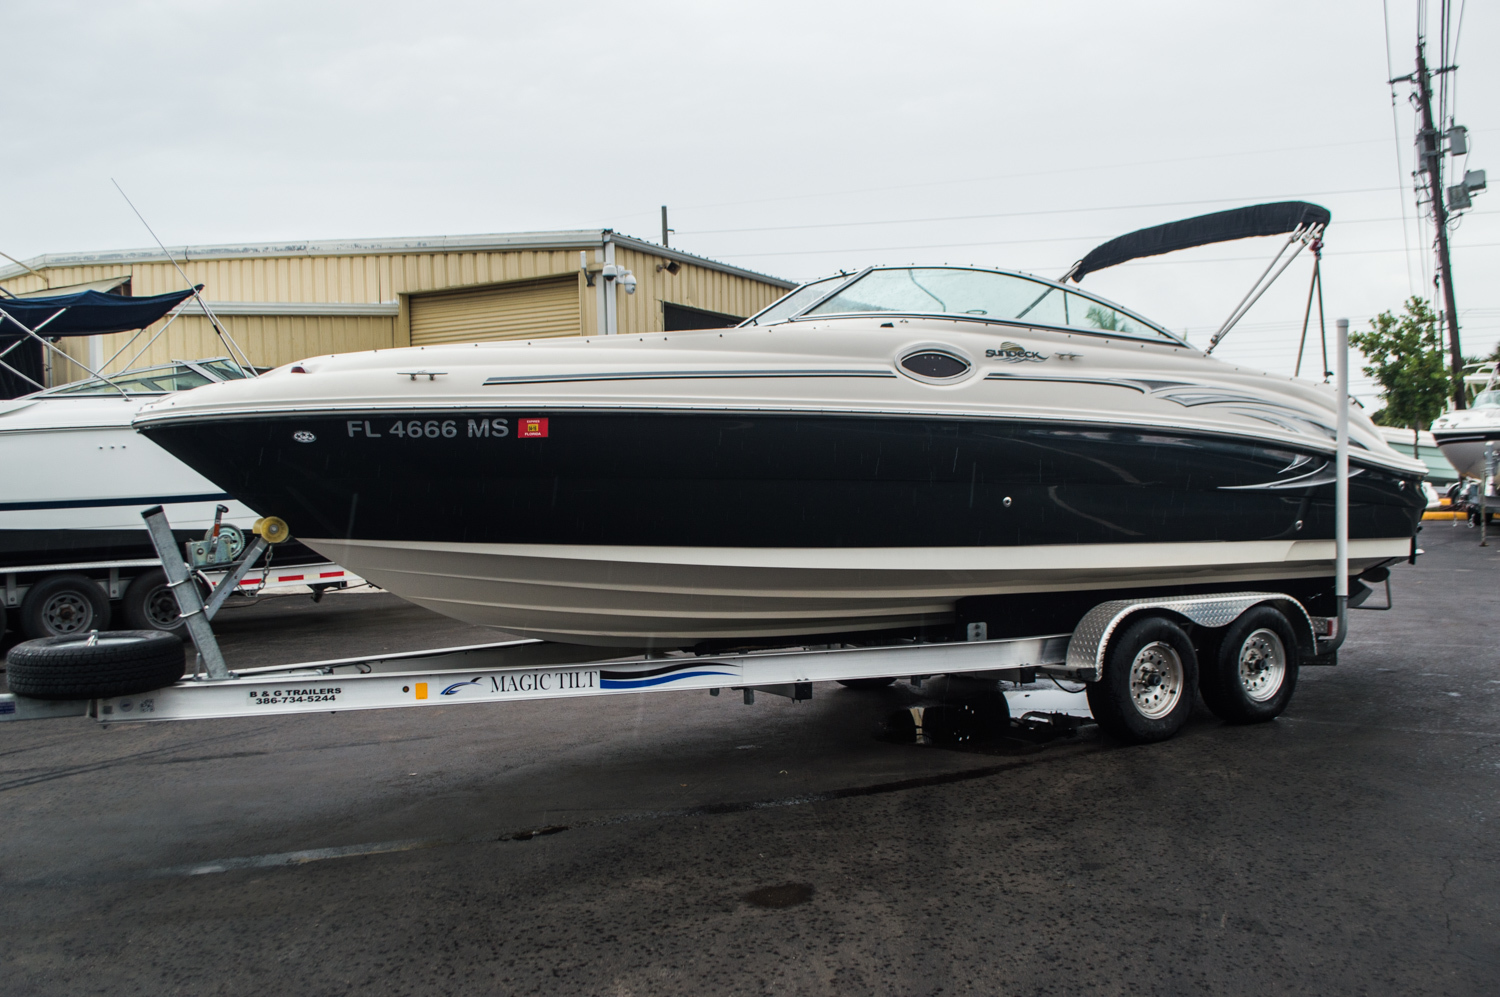 Thumbnail 3 for Used 2005 Sea Ray 240 Sundeck boat for sale in West Palm Beach, FL